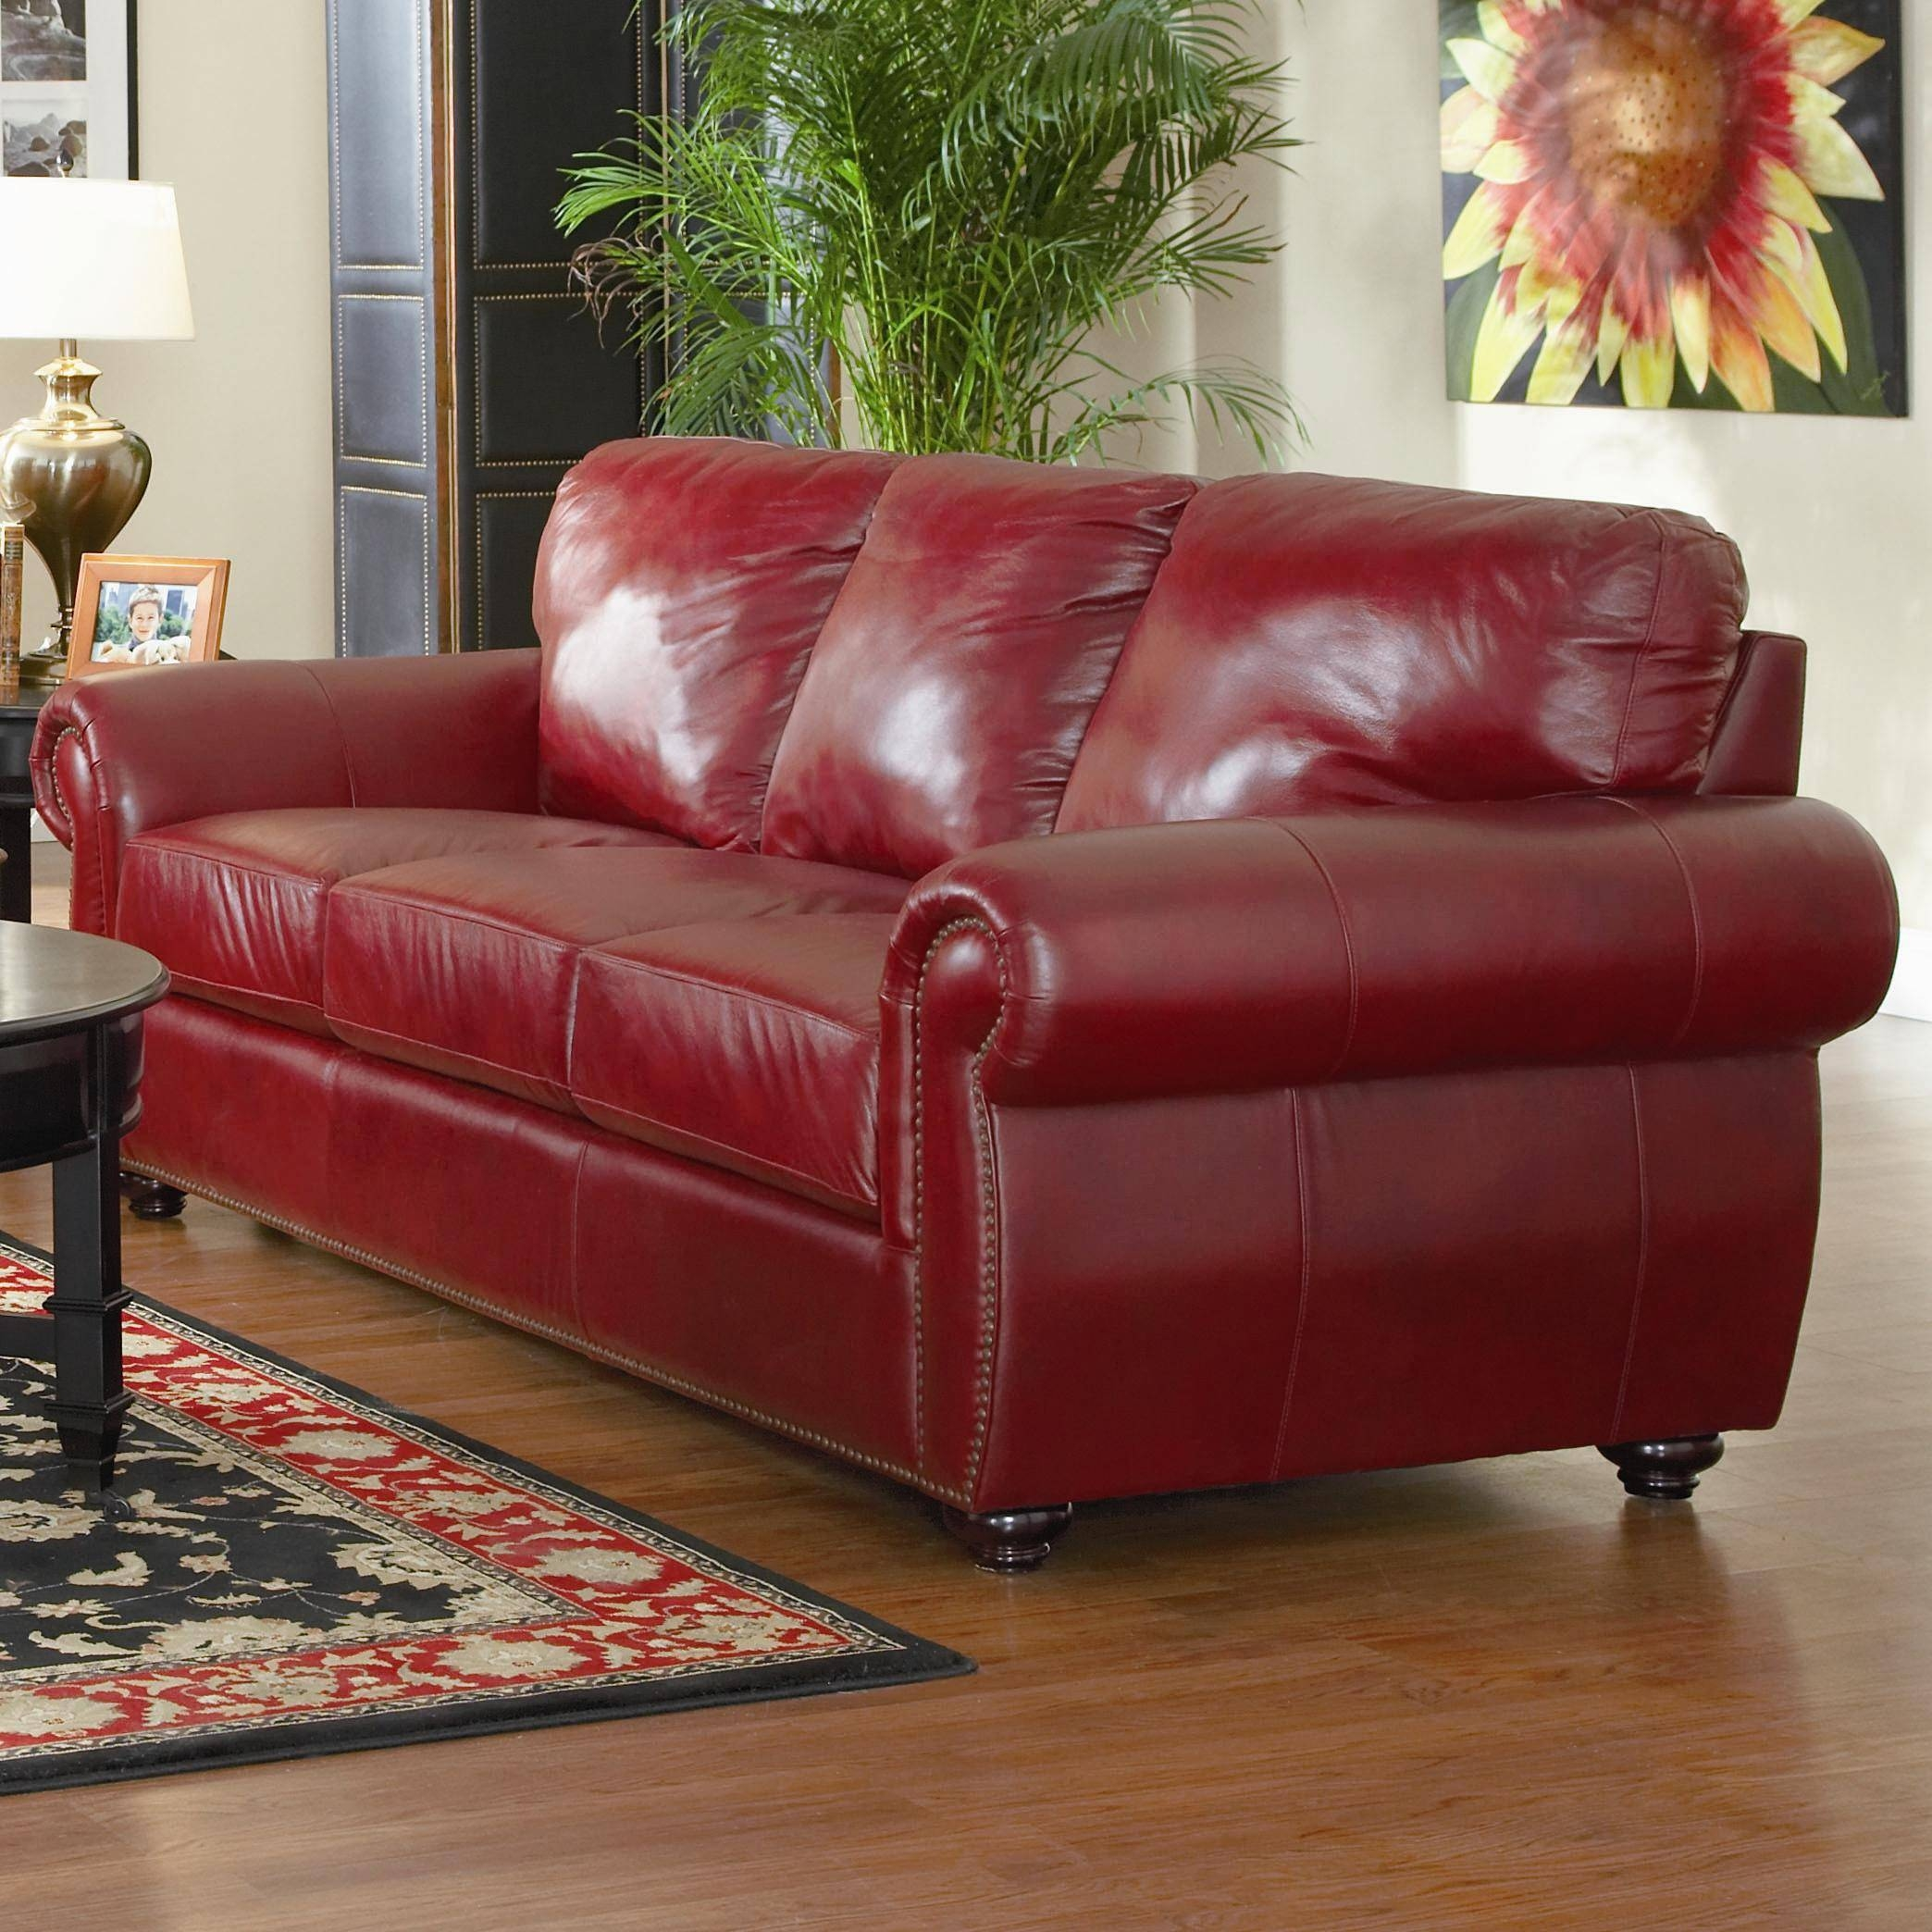 2019 Latest Burgundy Leather Sofa Sets